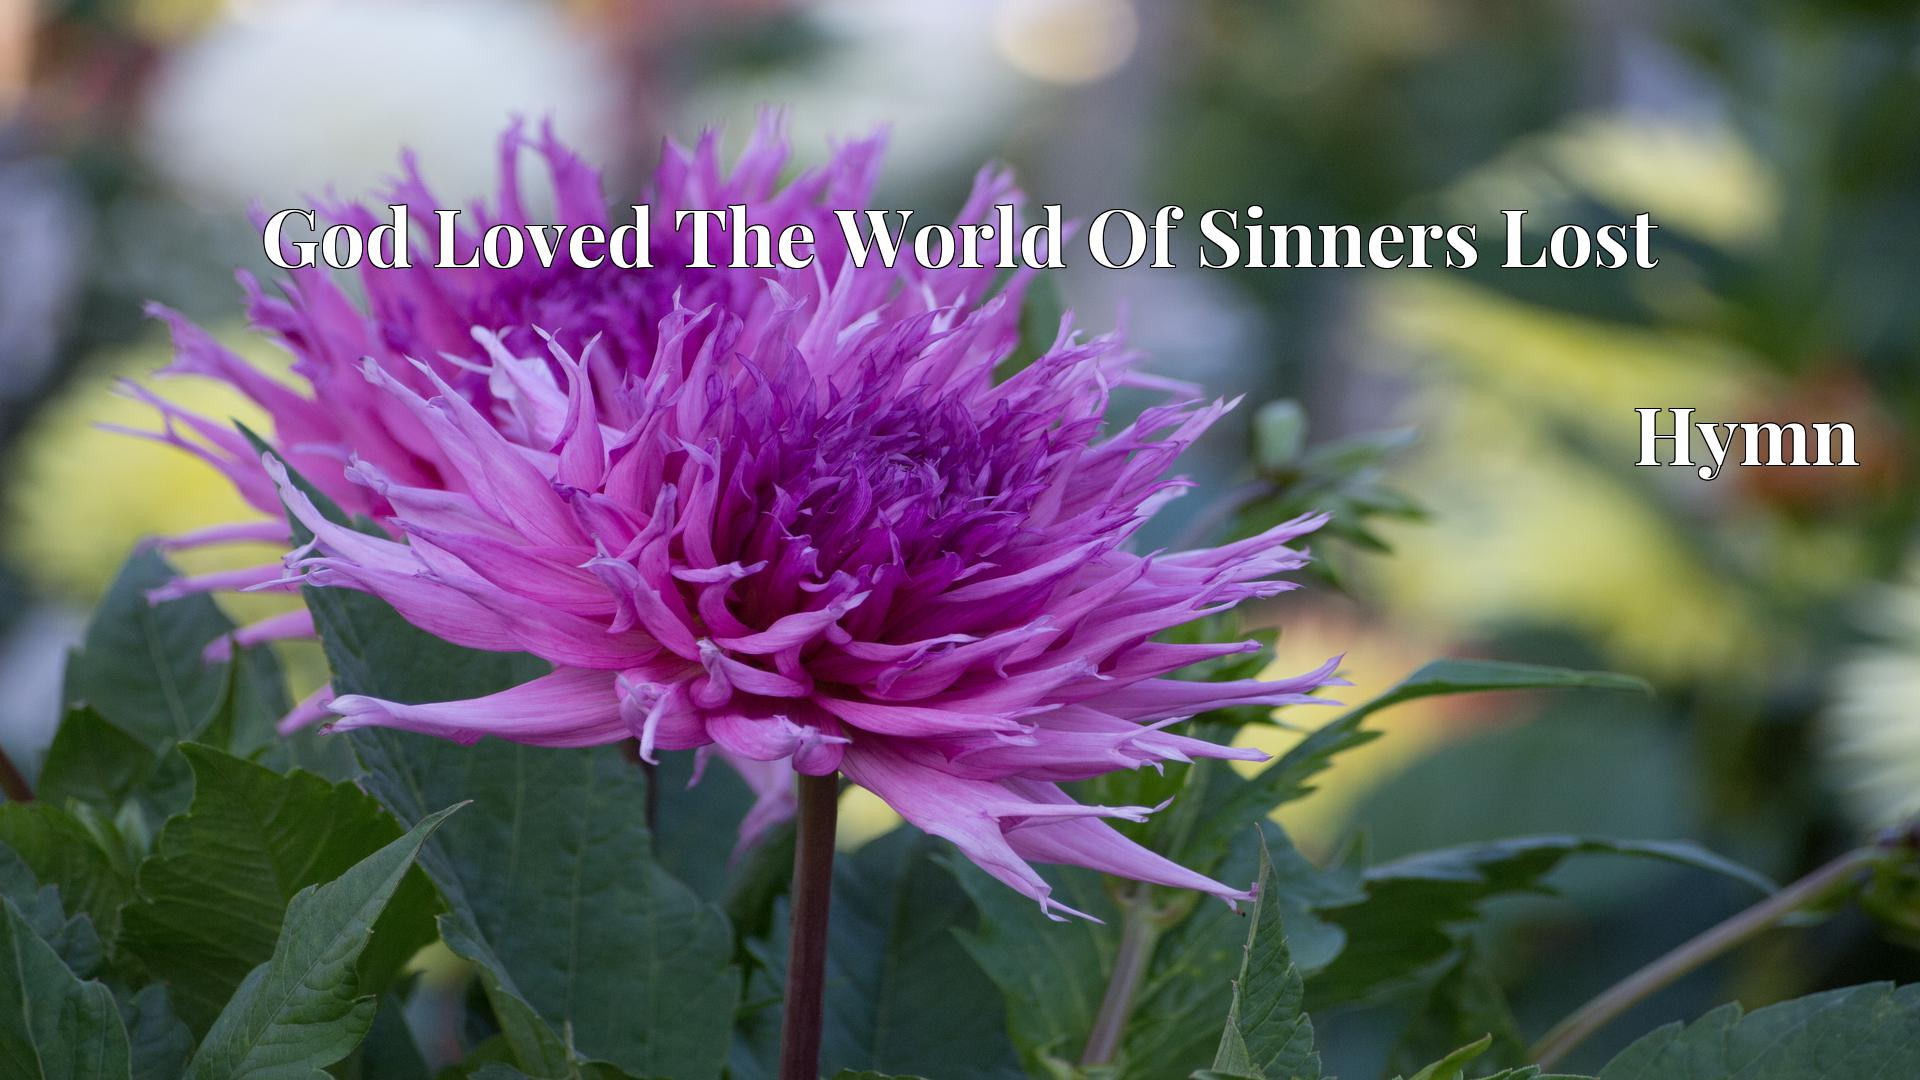 God Loved The World Of Sinners Lost Hymn Lyric